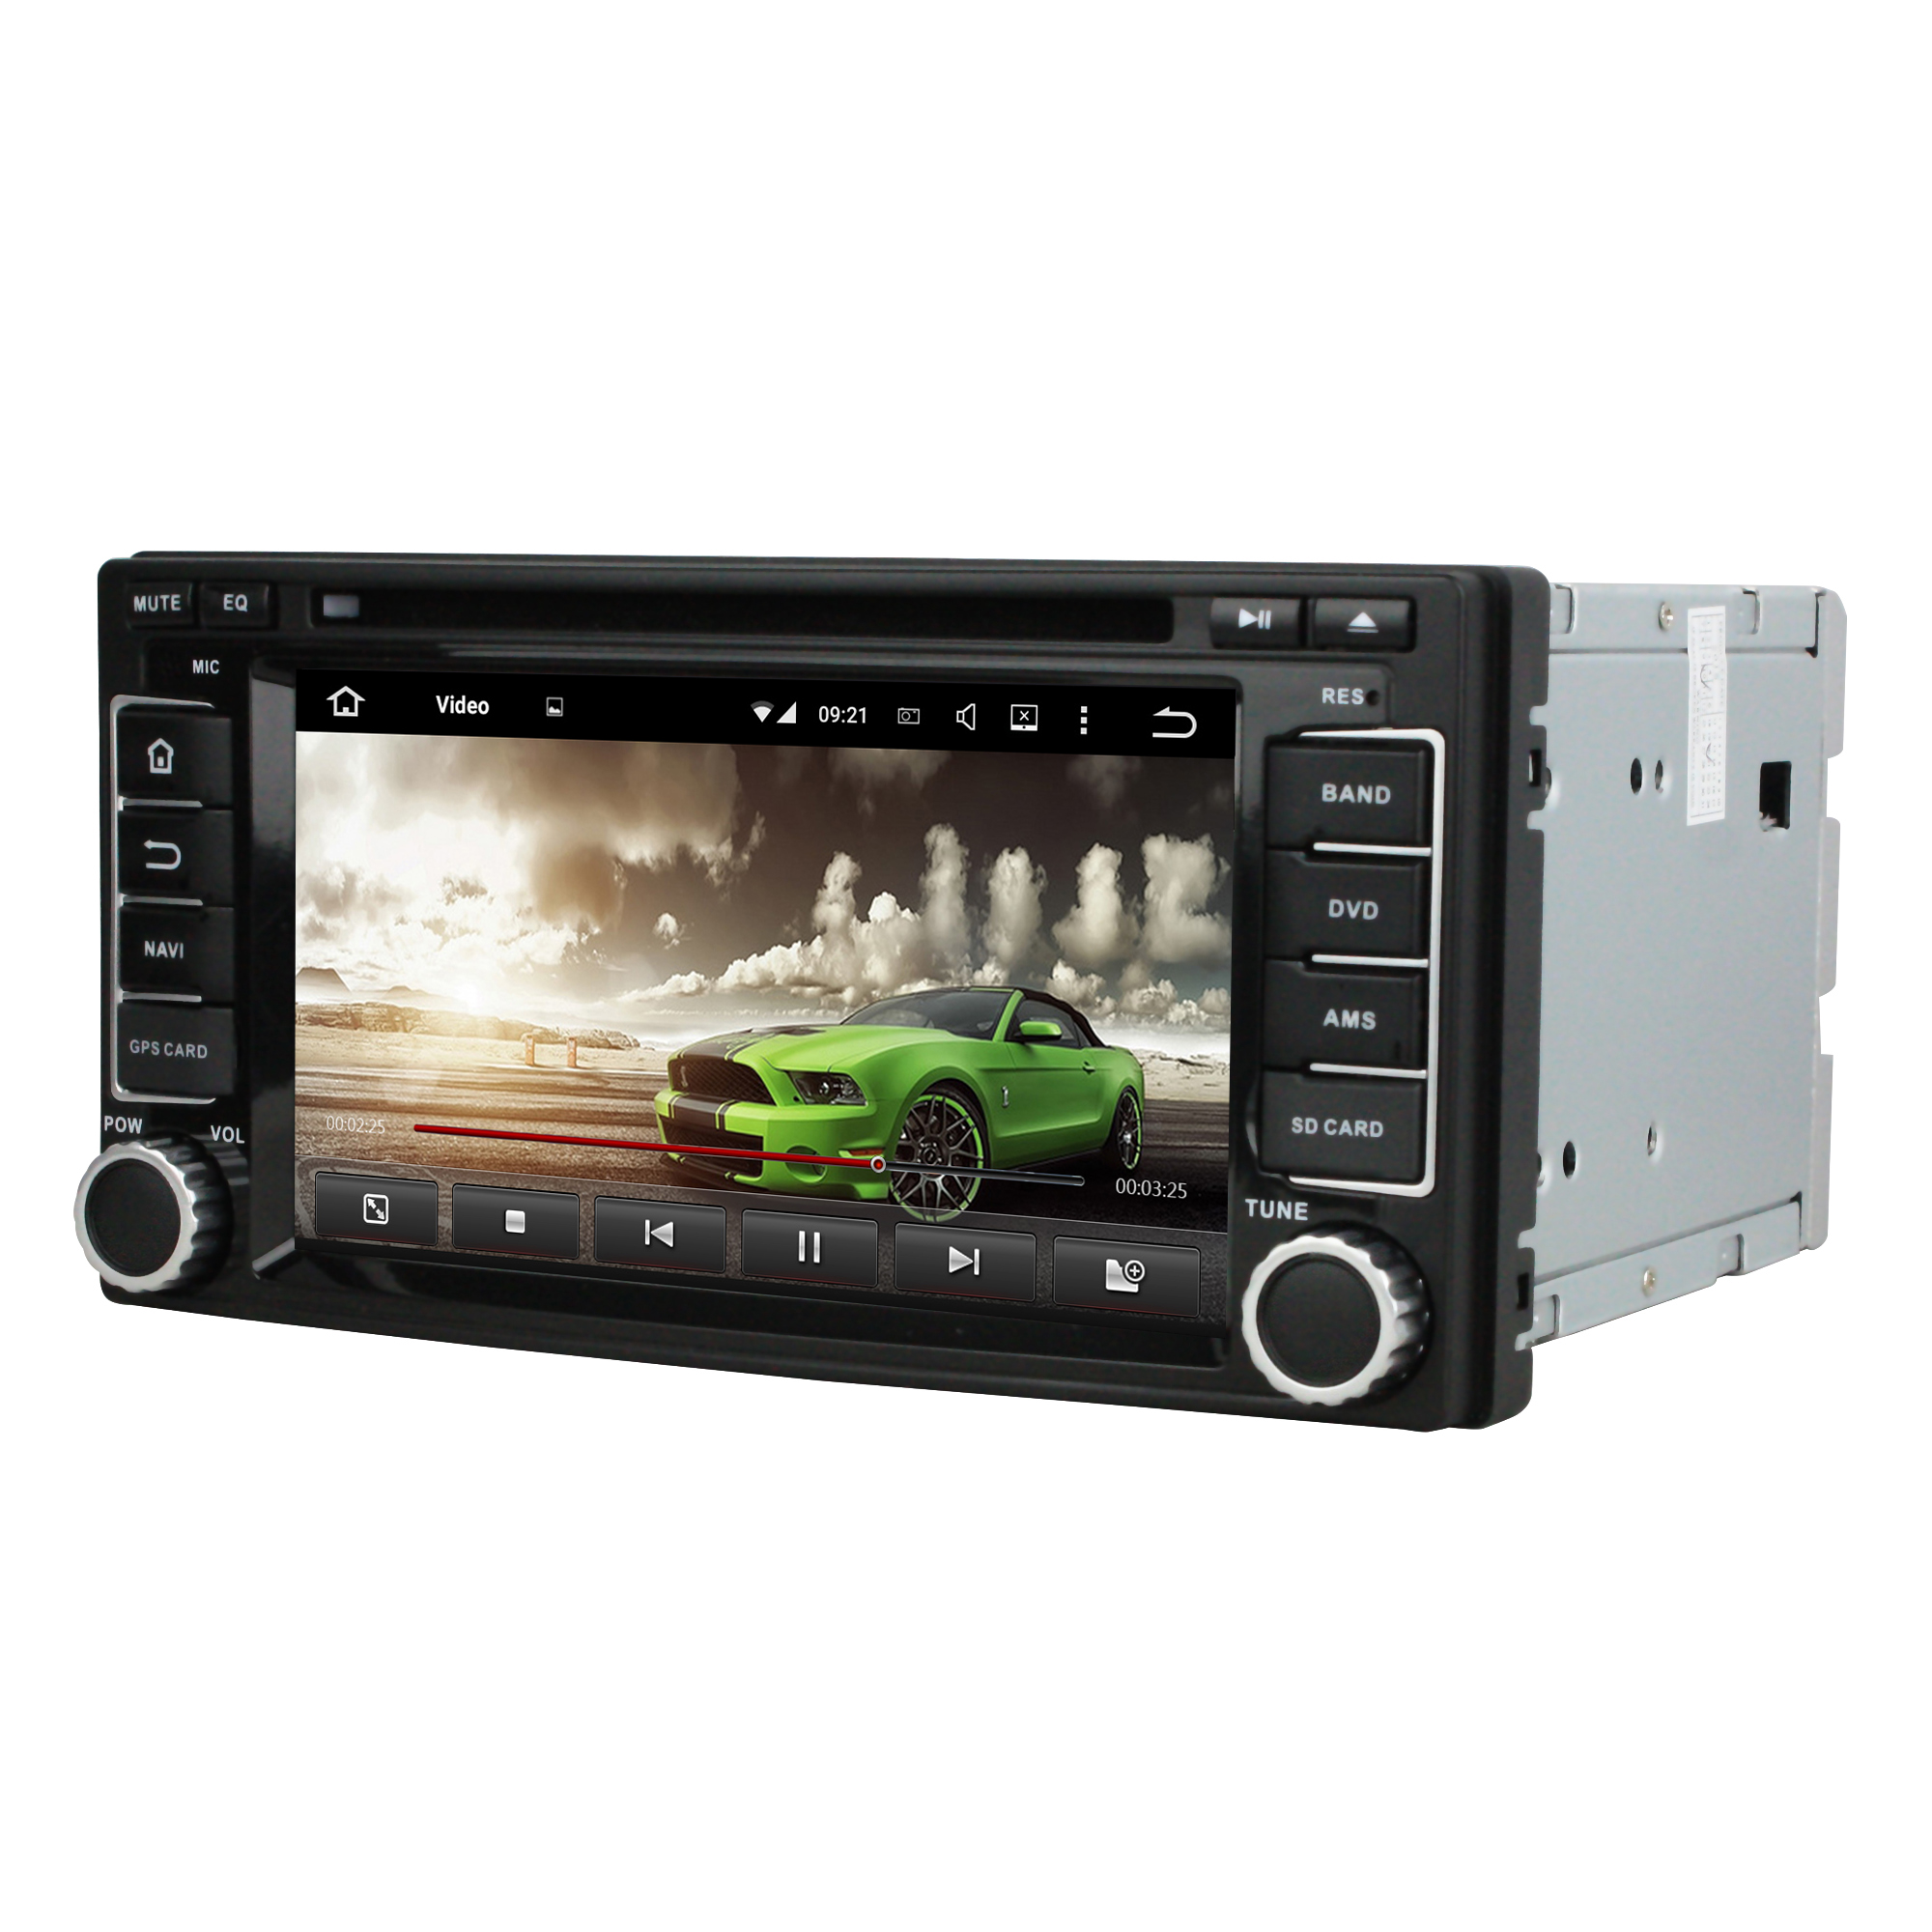 Forester/Impreza 2008-2011 auto dvd player